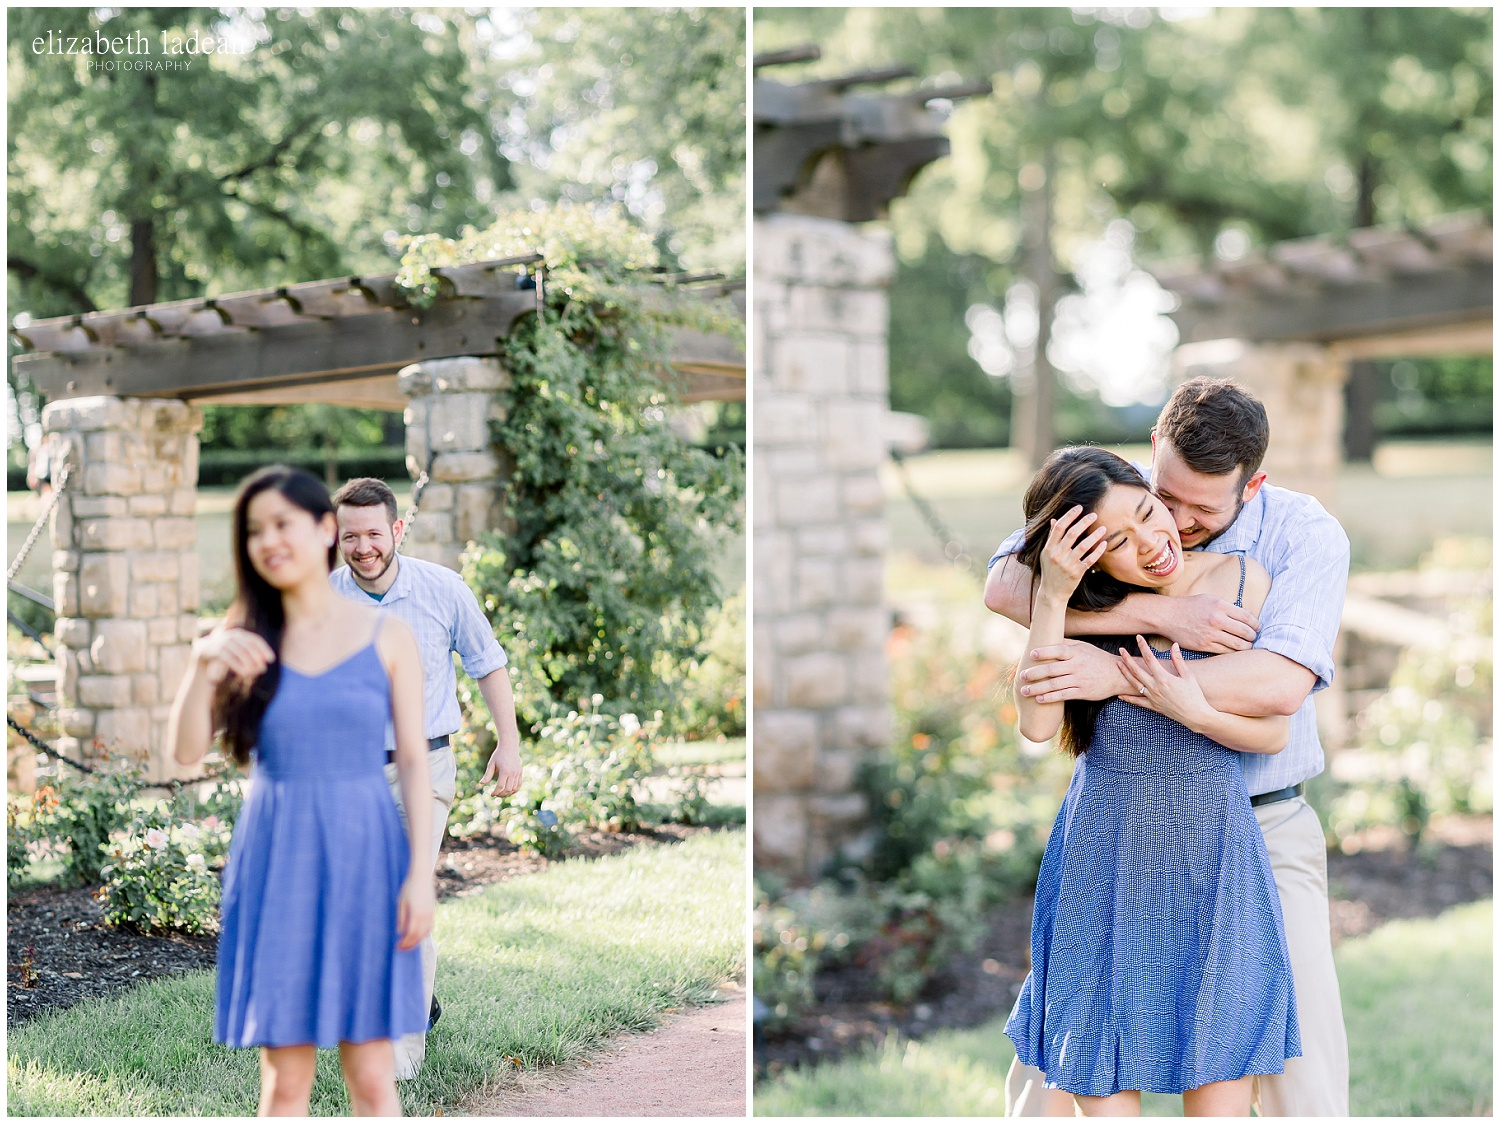 -behind-the-scenes-of-a-wedding-photographer-2018-elizabeth-ladean-photography-photo_3488.jpg